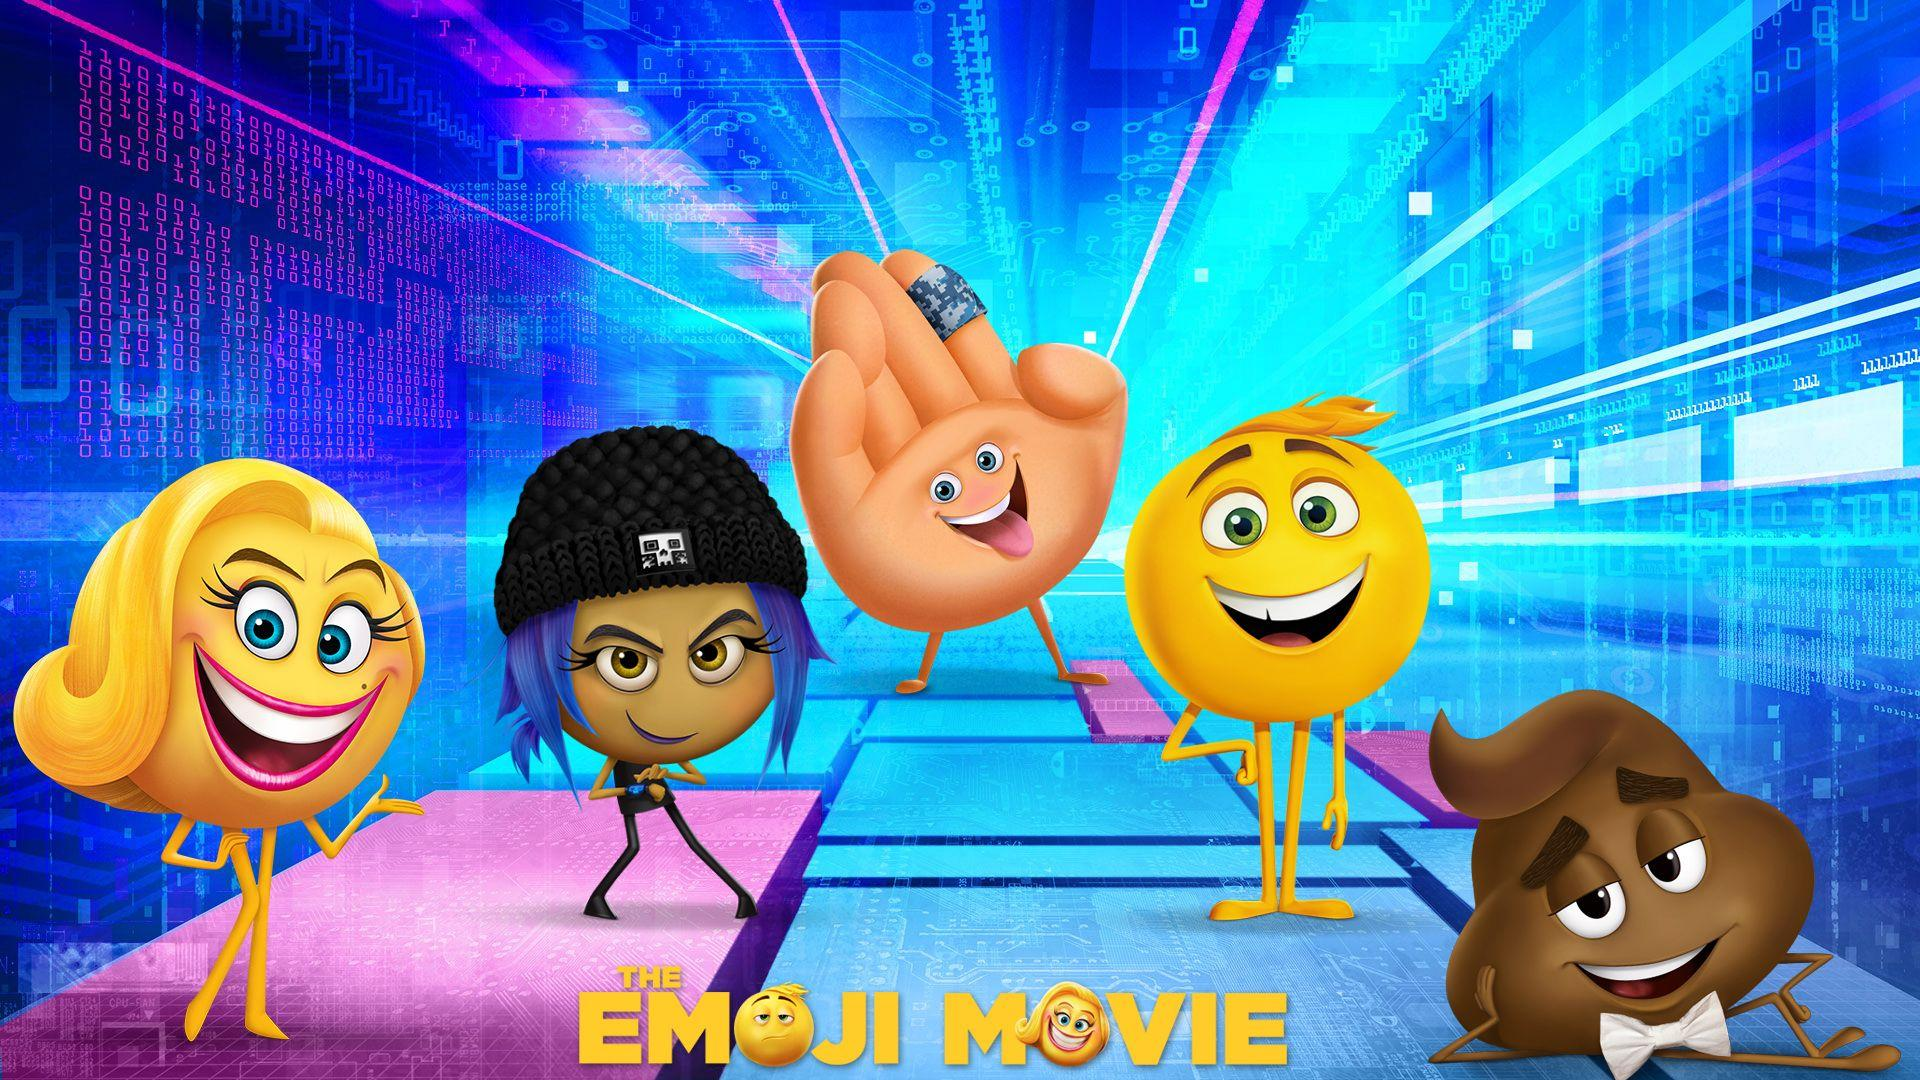 The Emoji Movie Wallpapers  Wallpaper Cave